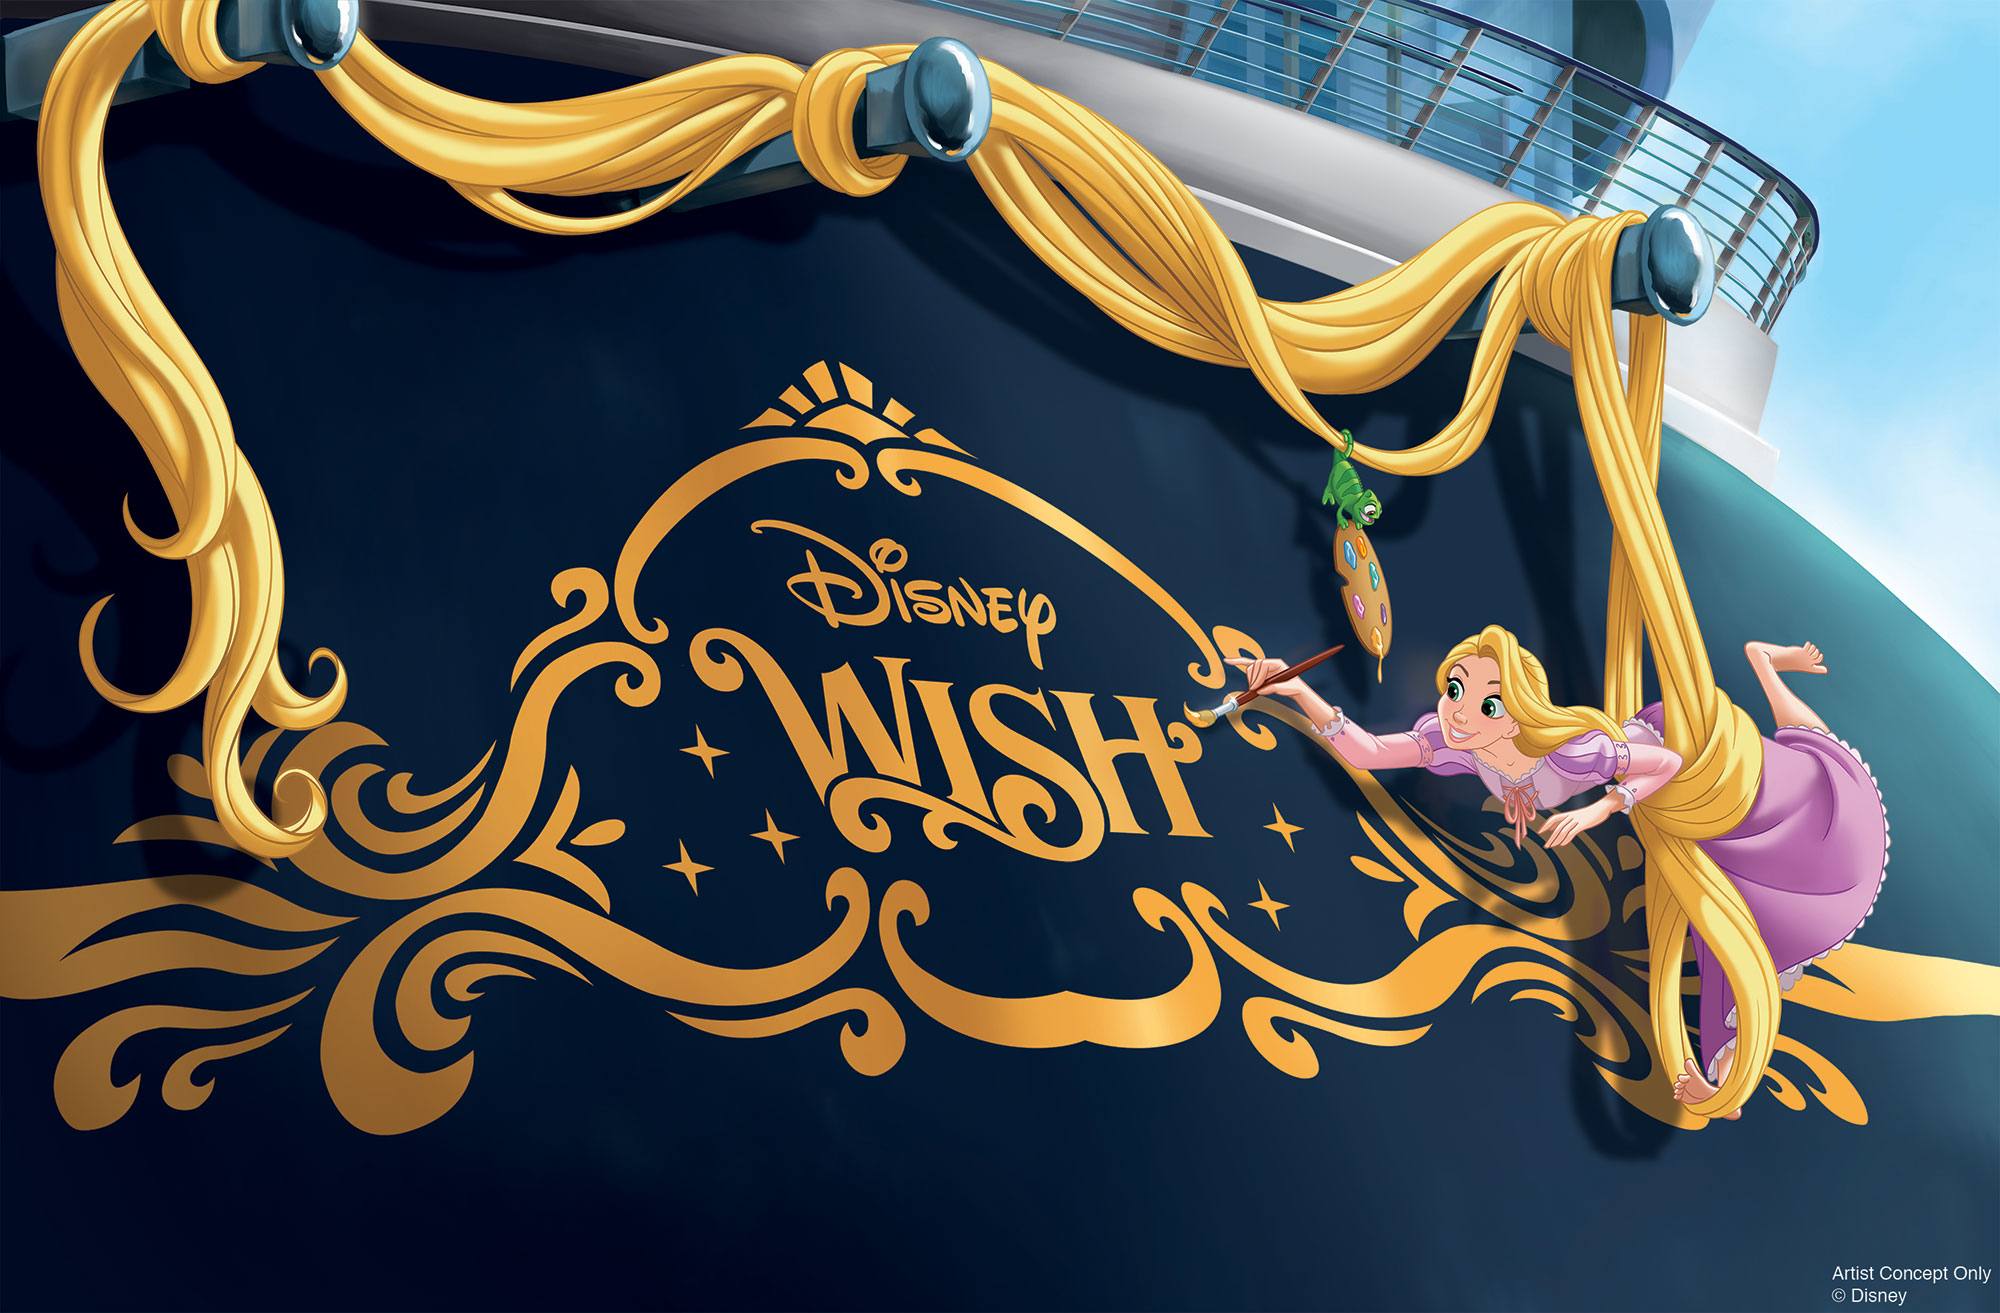 Disney Cruise Lines Reveals a New Ship (and Island Getaway) — See the Disney Wish! disney-wish-cruise-line-ship-rapunzel